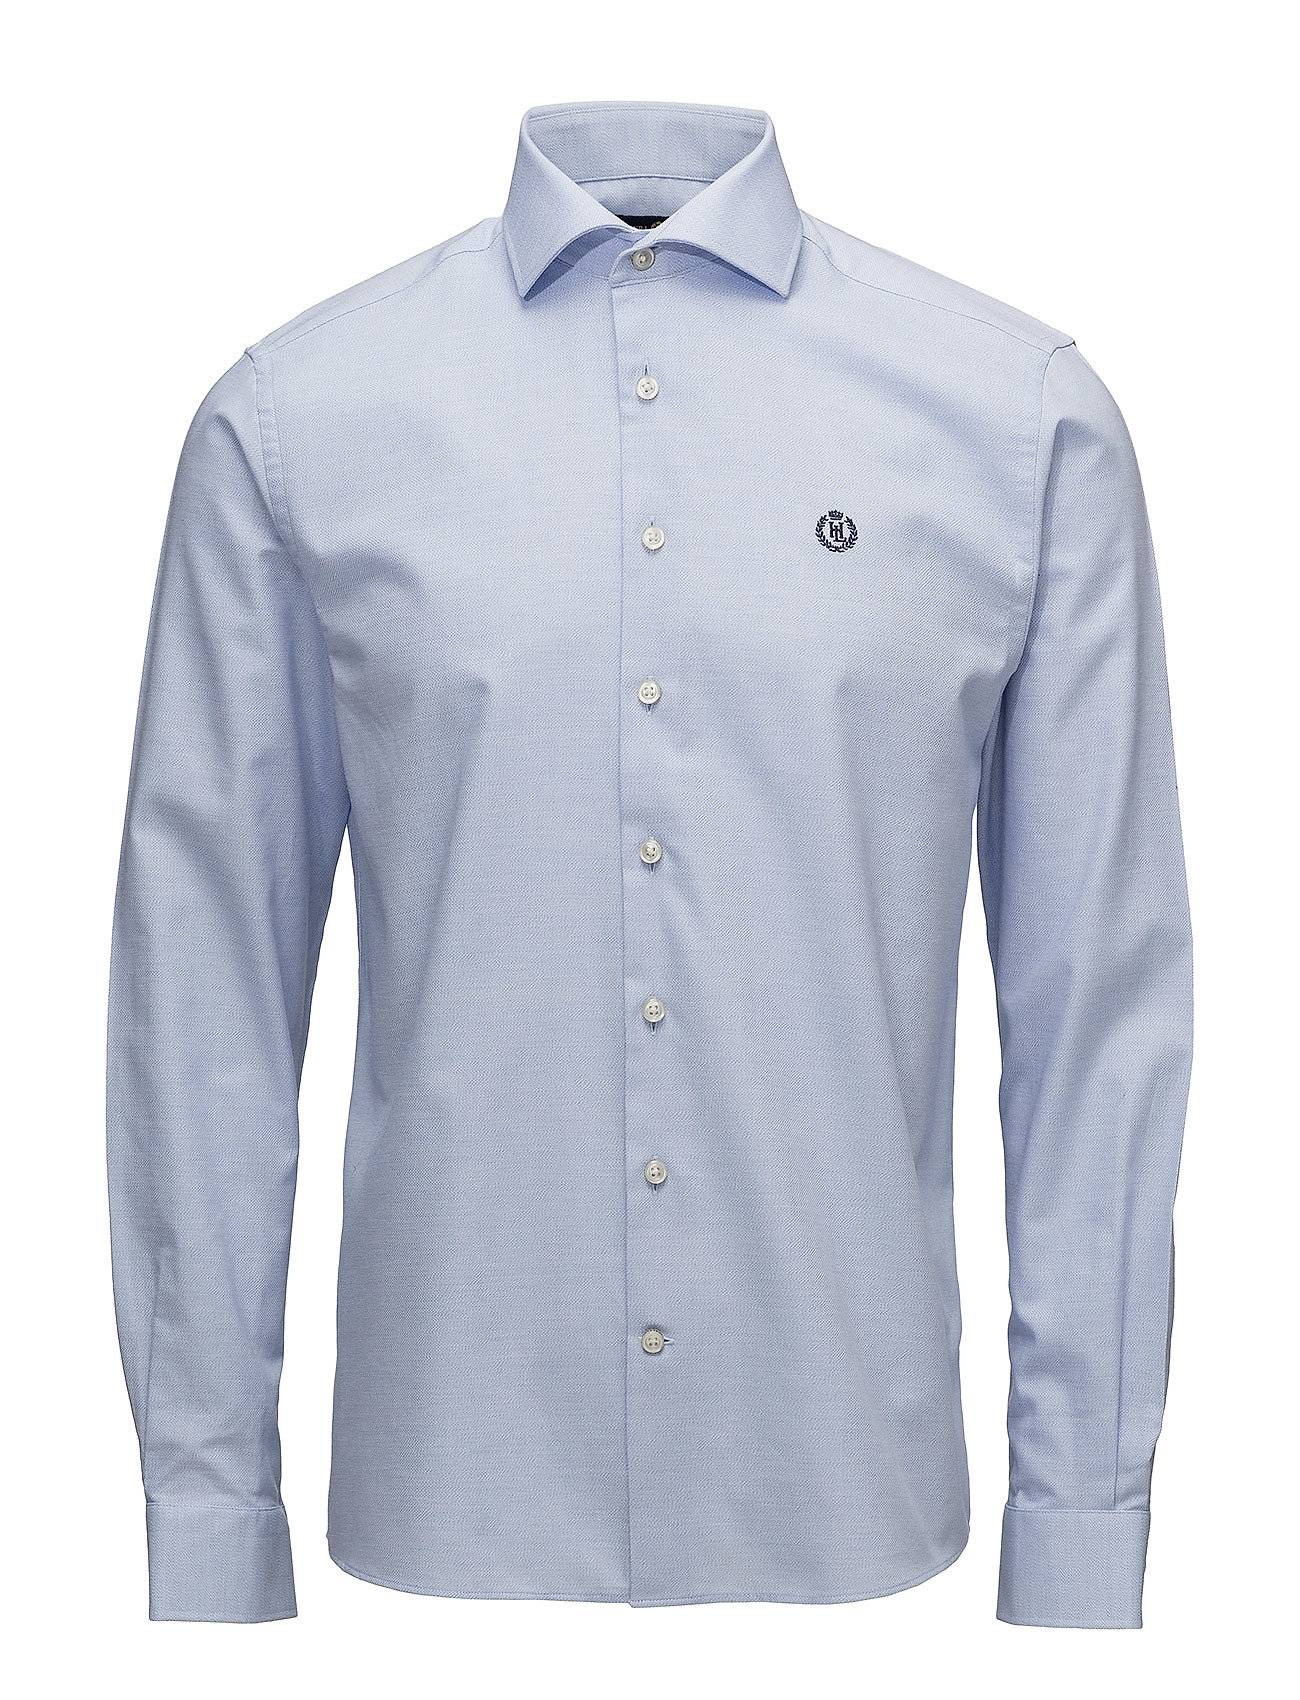 Henri Lloyd Montrose Regular Shirt